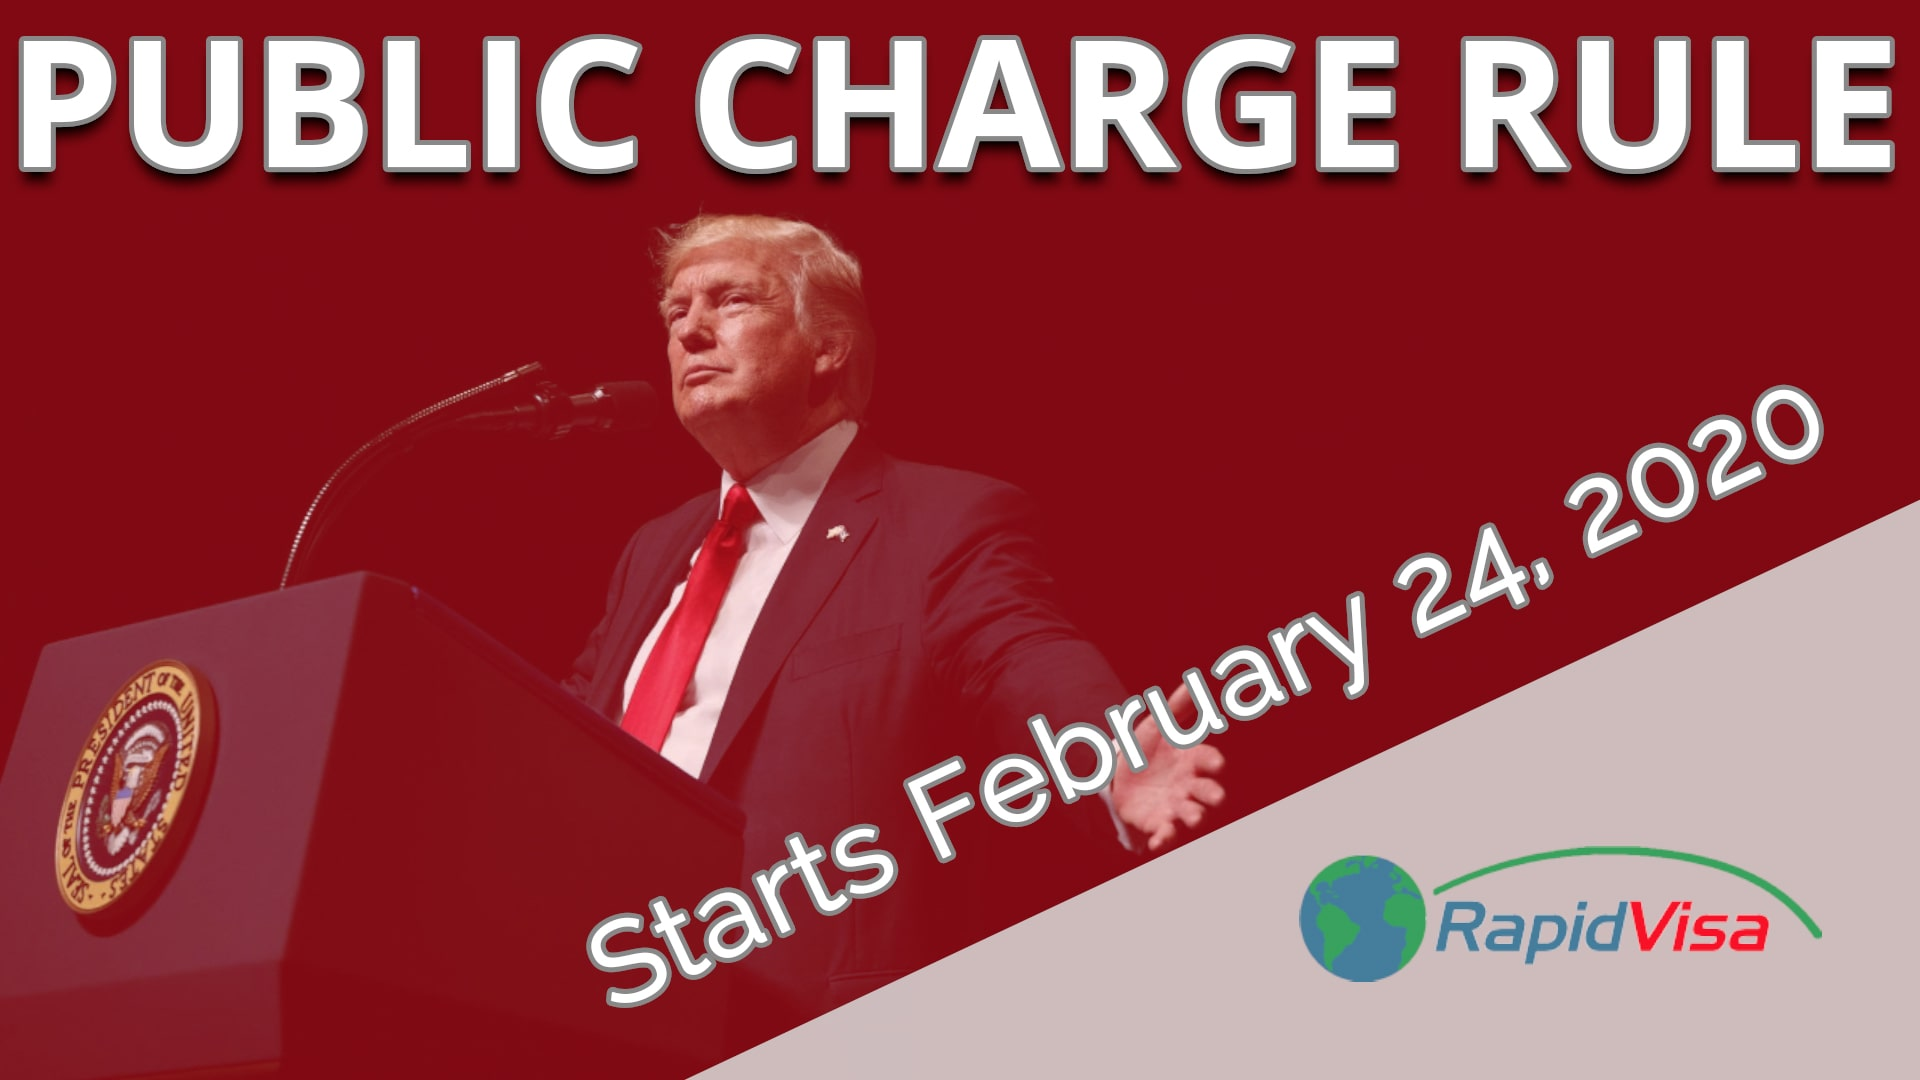 Public Charge Rule Starts February 24, 2020